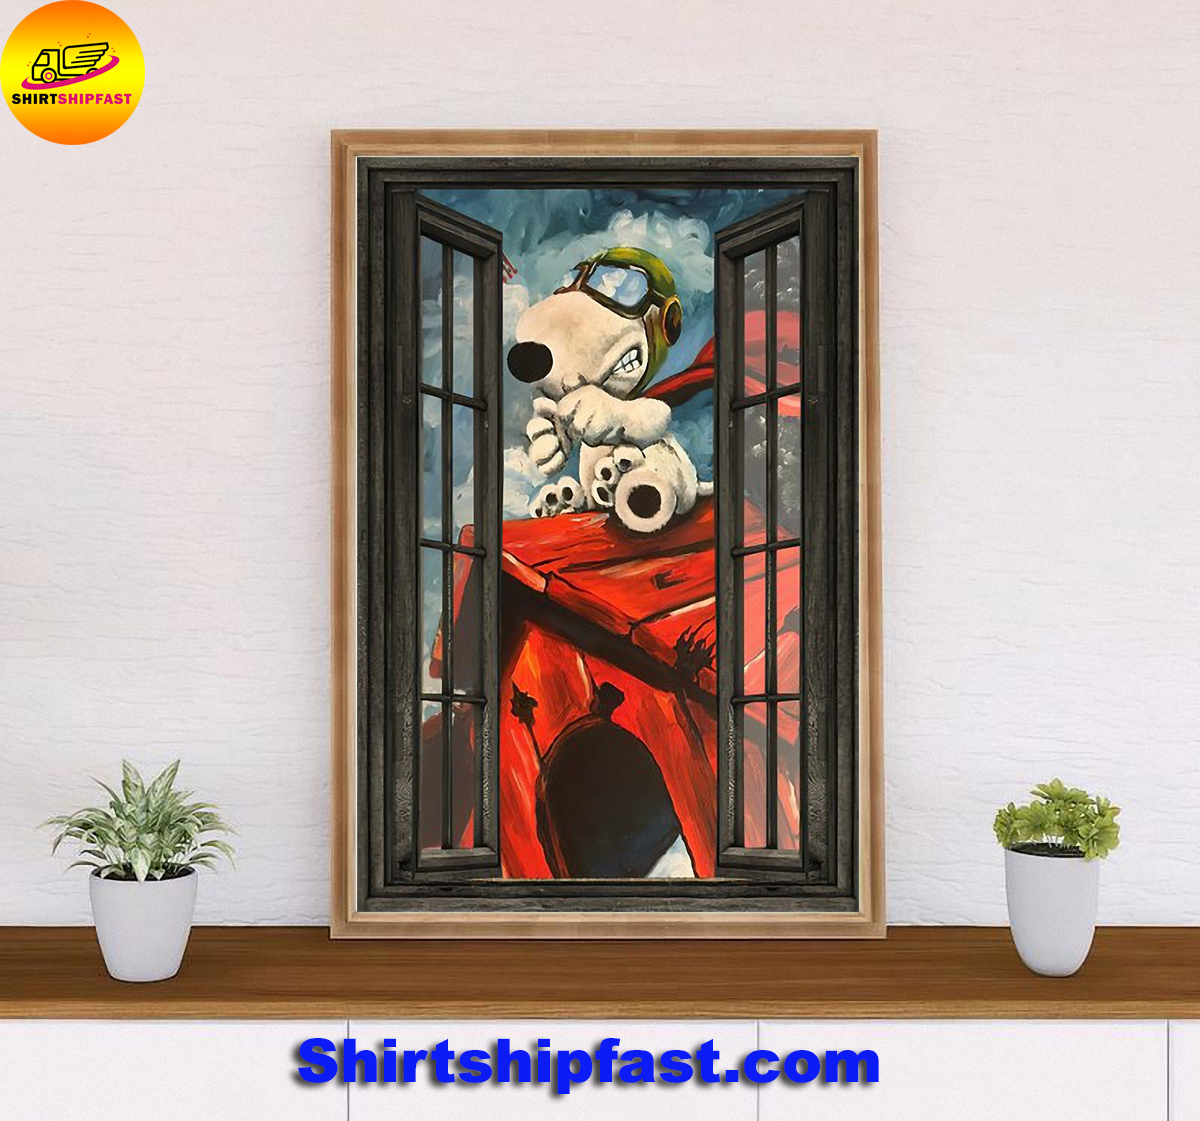 Snoopy flying ace window poster - Picture 1